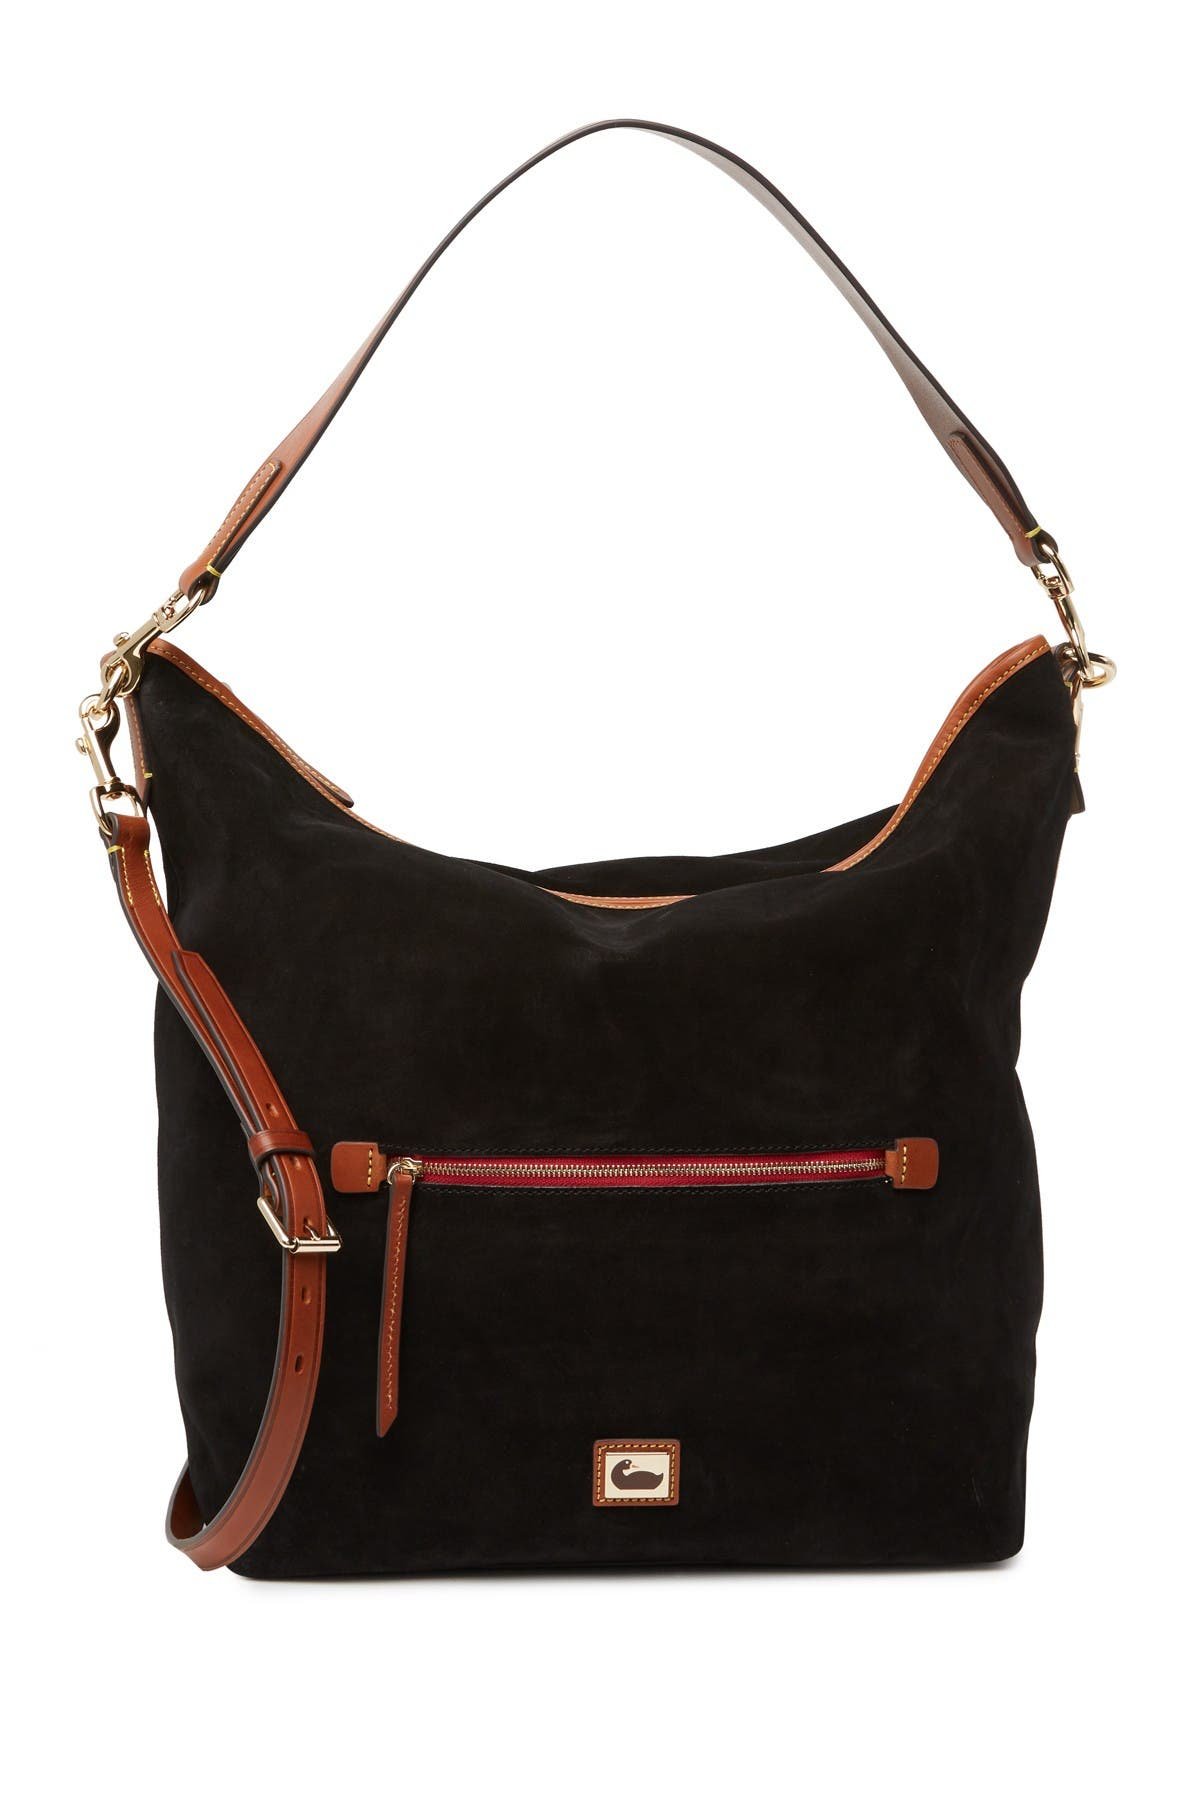 Image of Dooney & Bourke Large Suede Hobo Crossbody Bag